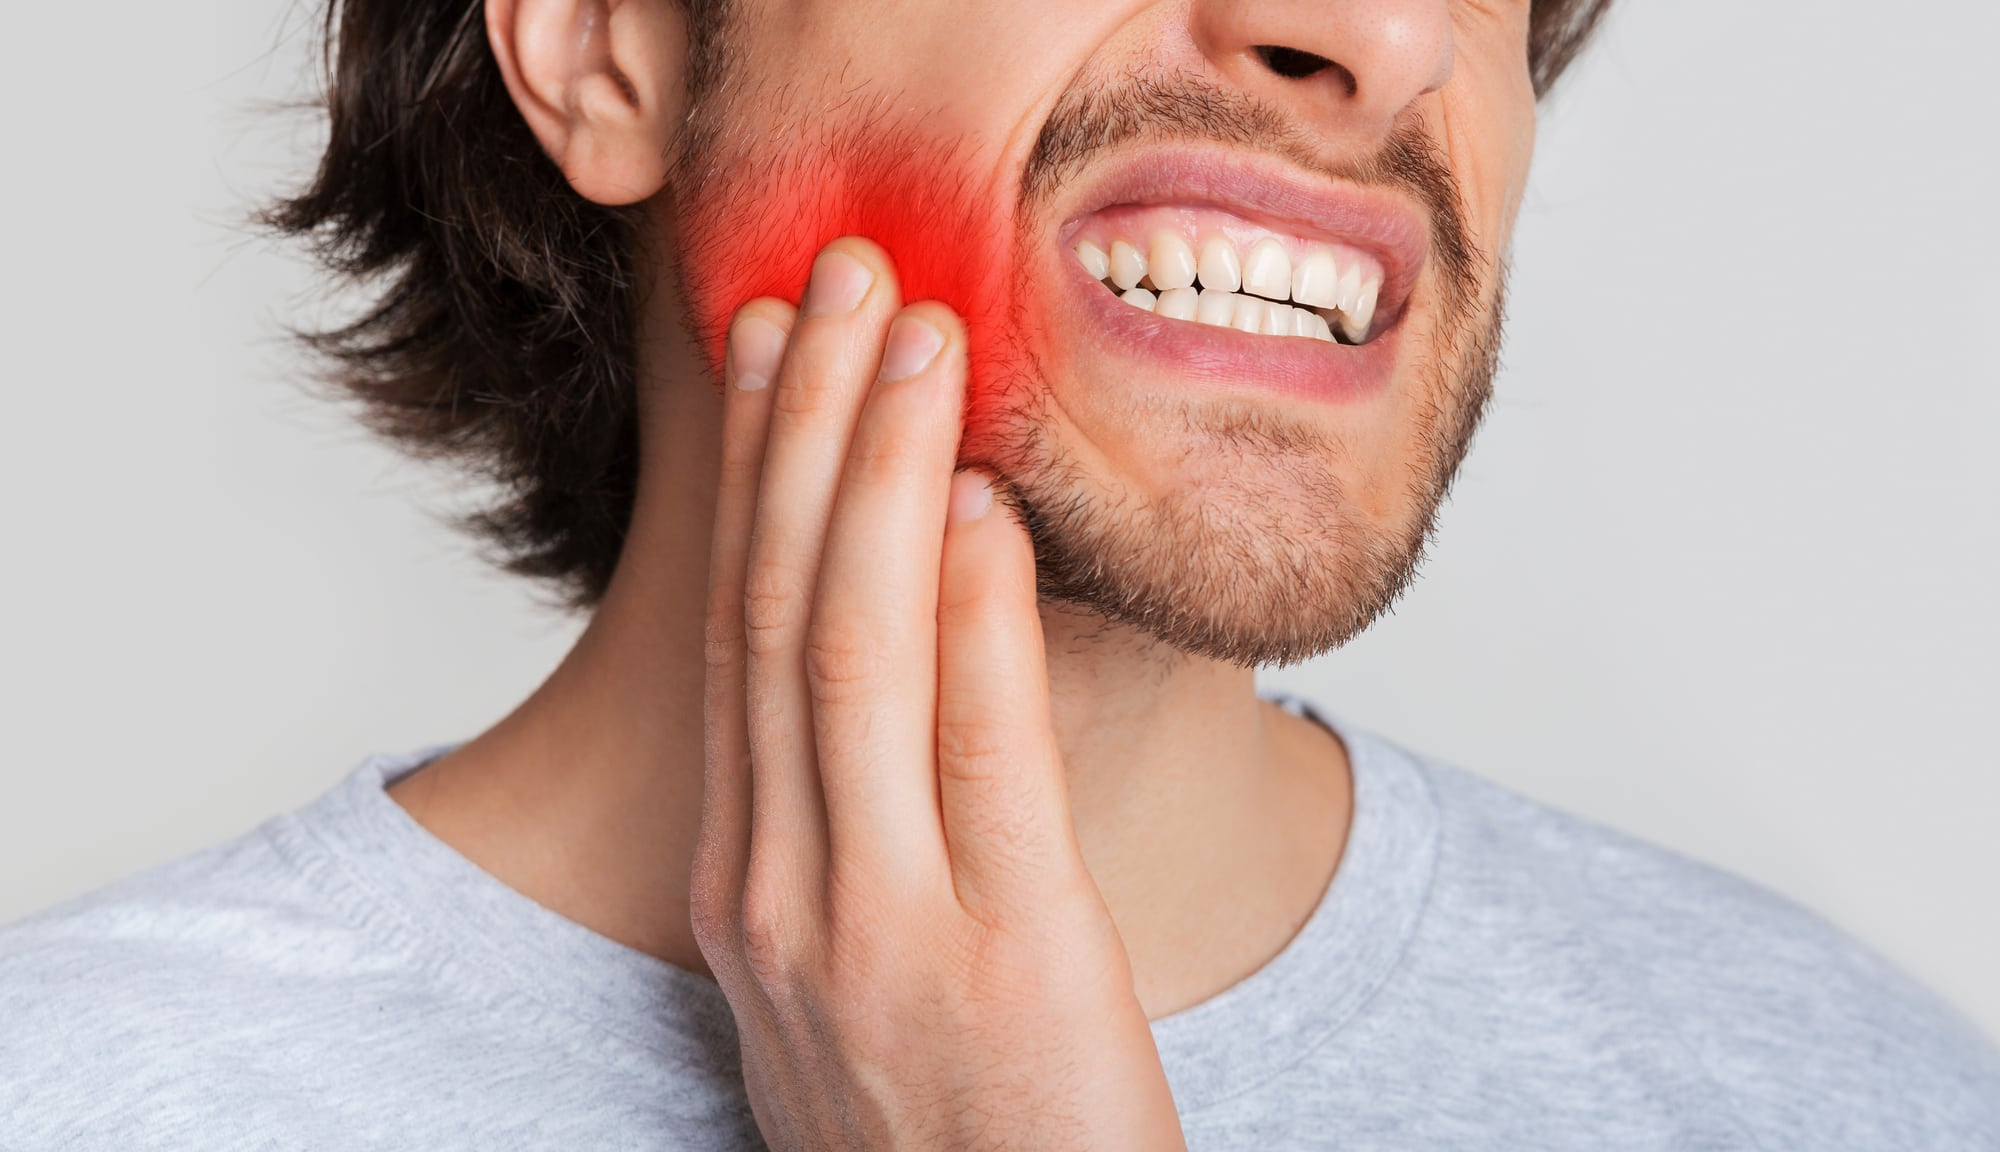 Tooth and gum inflammation. Guy suffers from pain in his mouth and presses hand to red sore spot